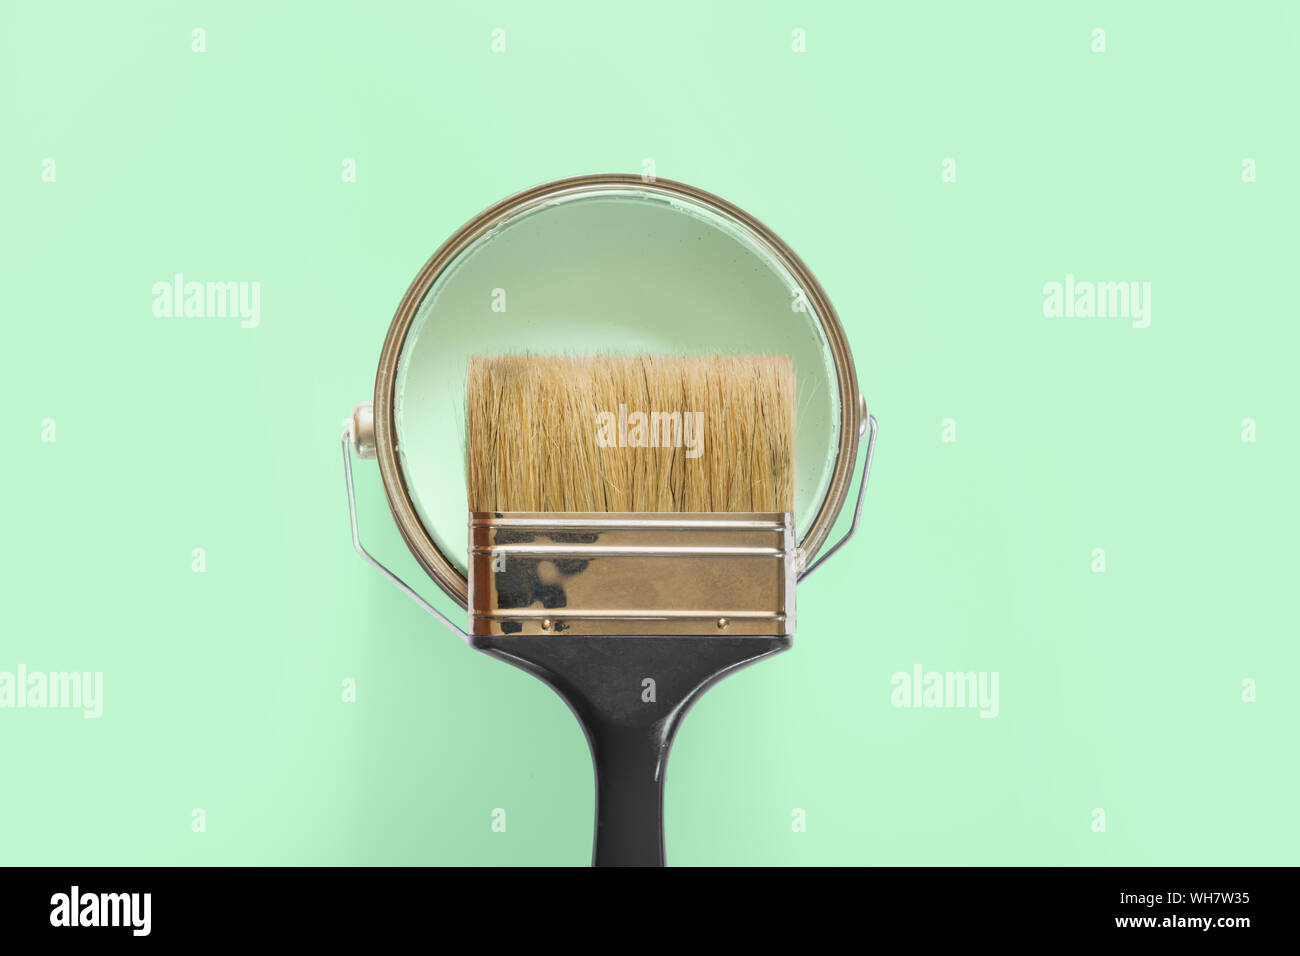 Black brush with open can of mint paint on neo mint background. Trend repairs concept. Stock Photo